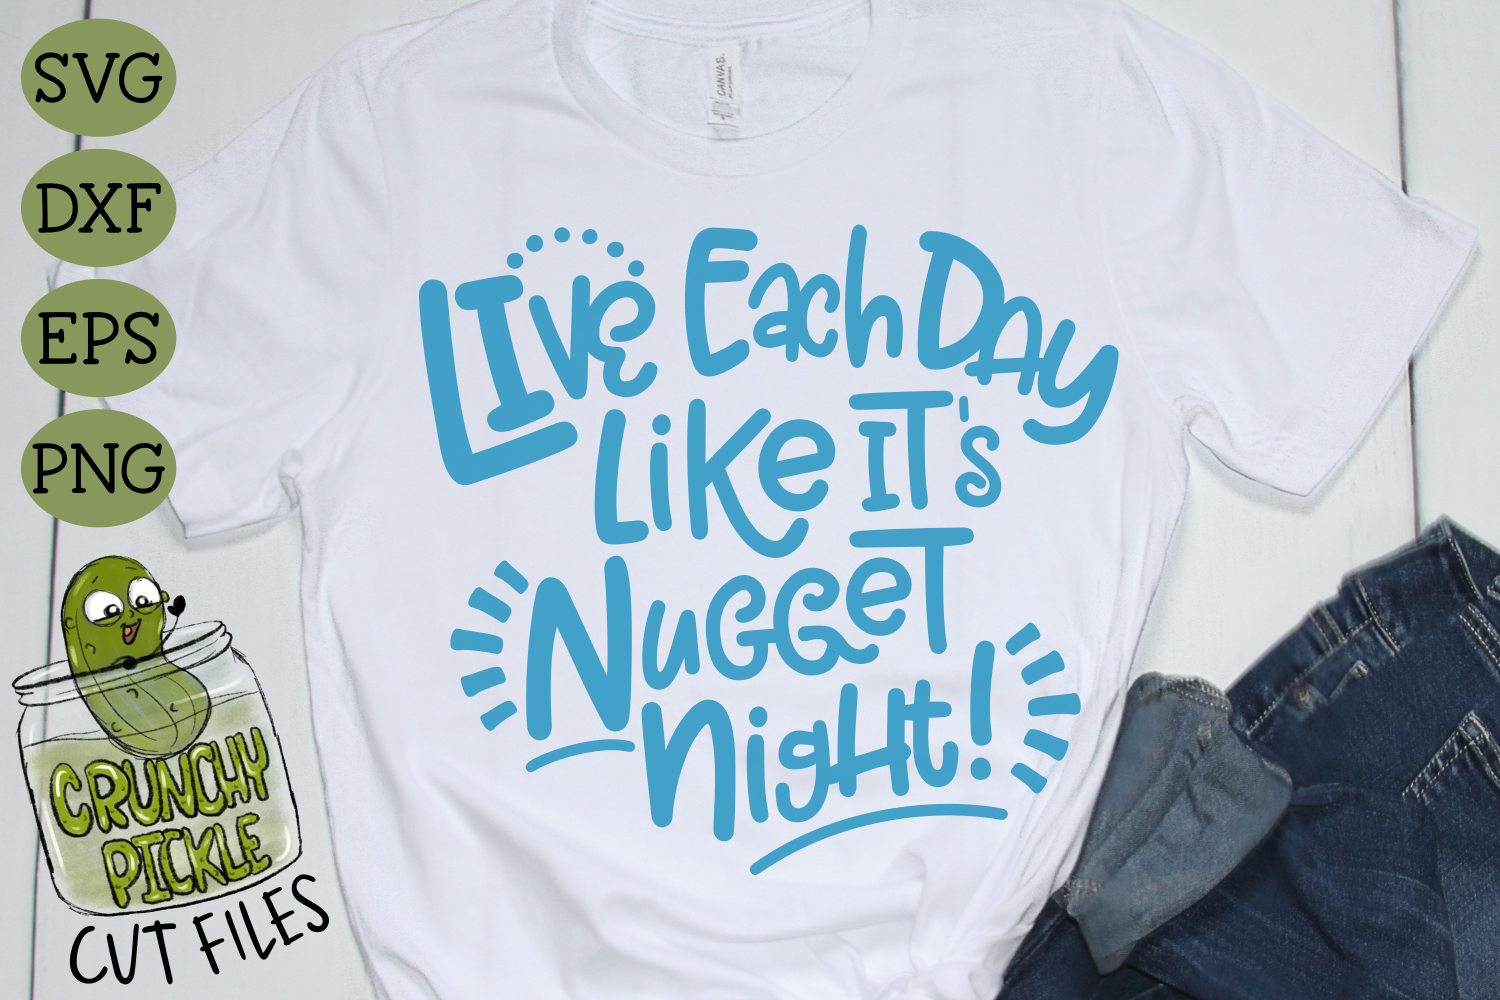 Live Each Day Like It's Nugget Night SVG Cut File example image 5